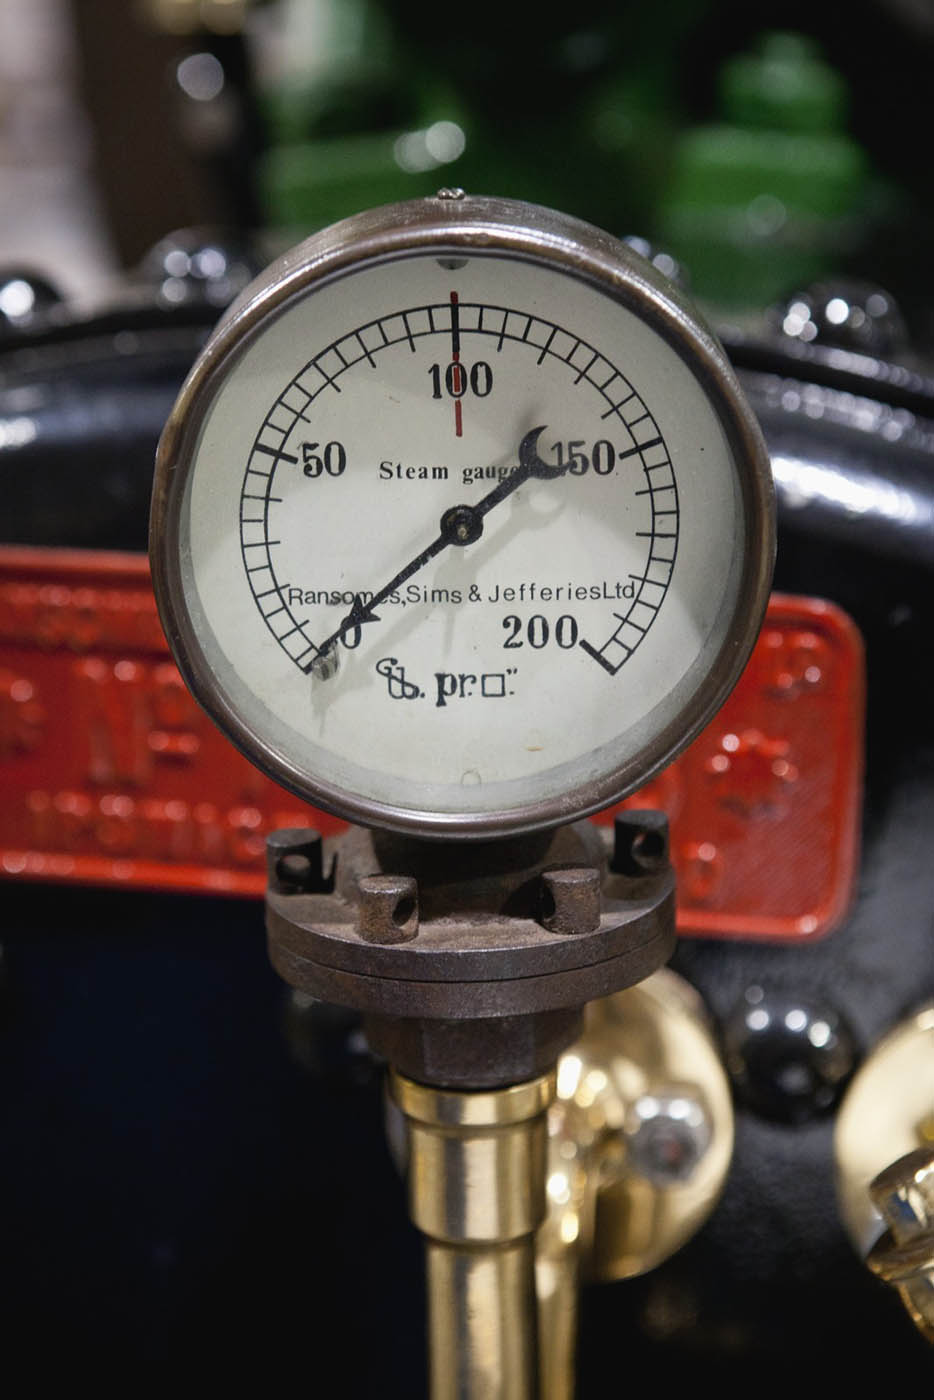 A colour photograph of a Ramsomes, Sims & Jefferies steam gauge, with a maximum level of 200. - click to view larger image